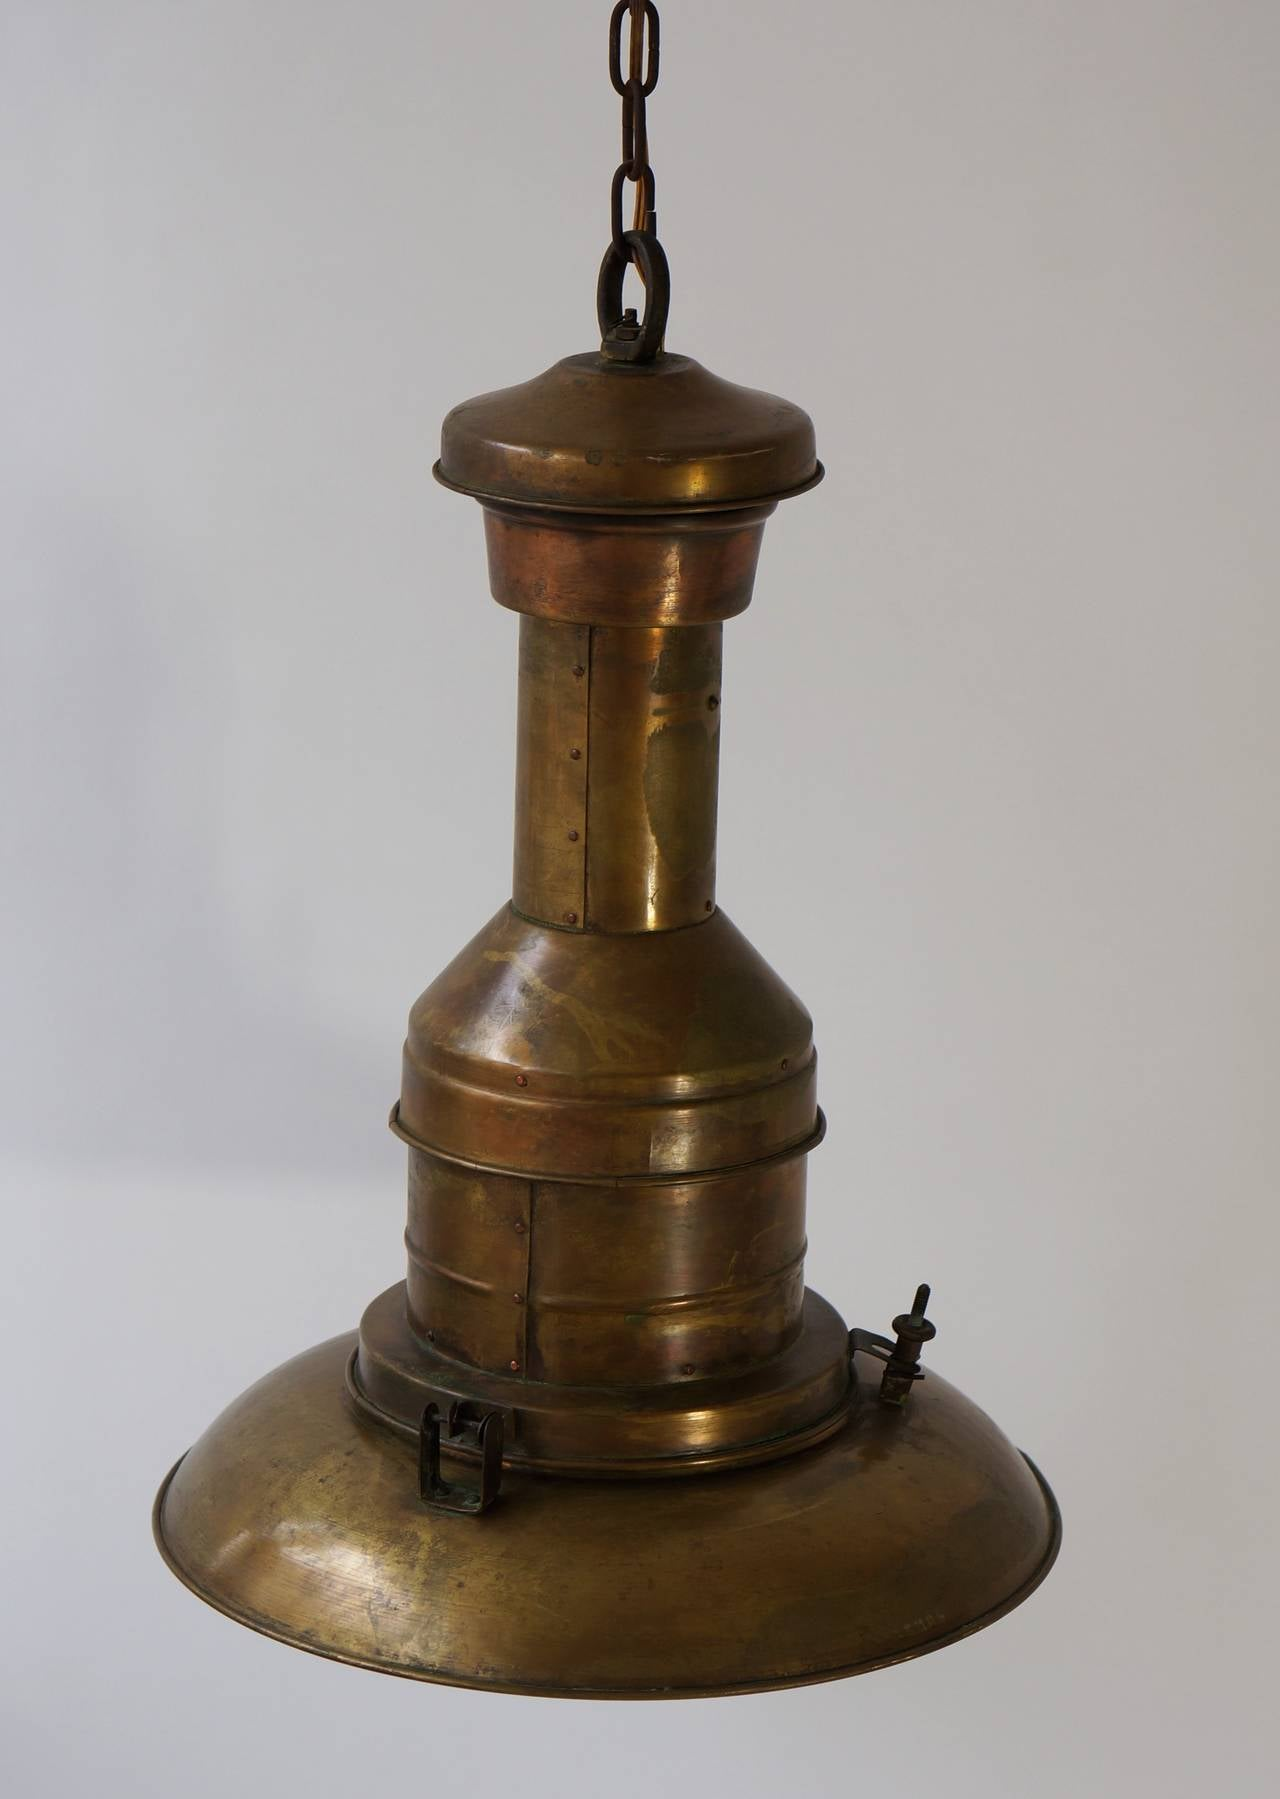 Industrial hanging gas light pendant now electrified with very nice patina, early 20th century.